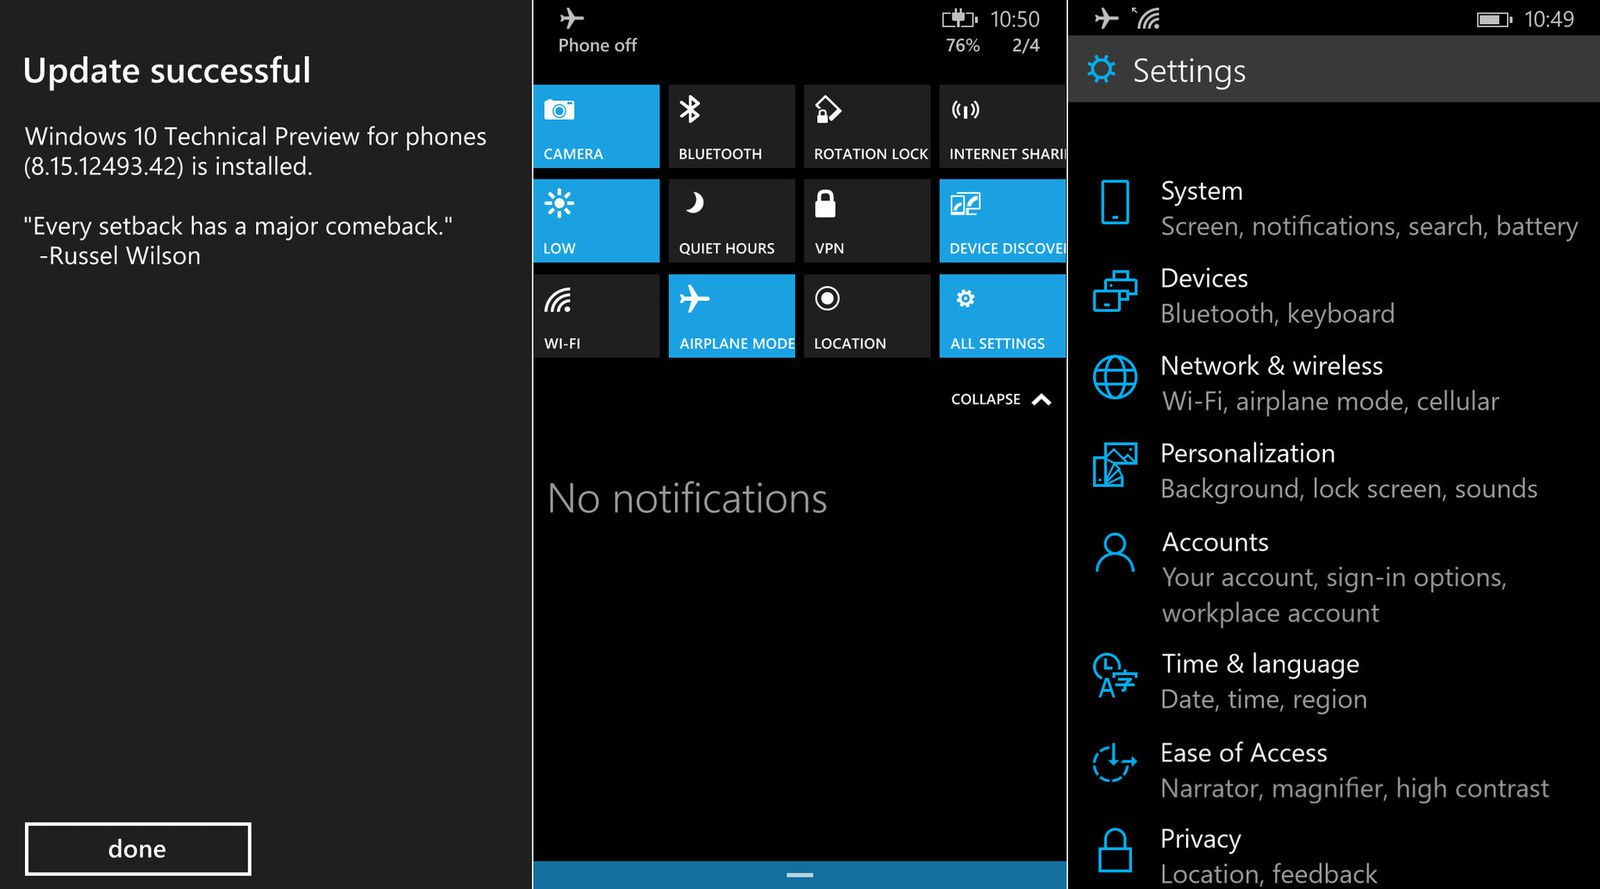 3d Touch Wallpaper Maker Leaked Screenshots Reveal More Windows 10 Phone Features